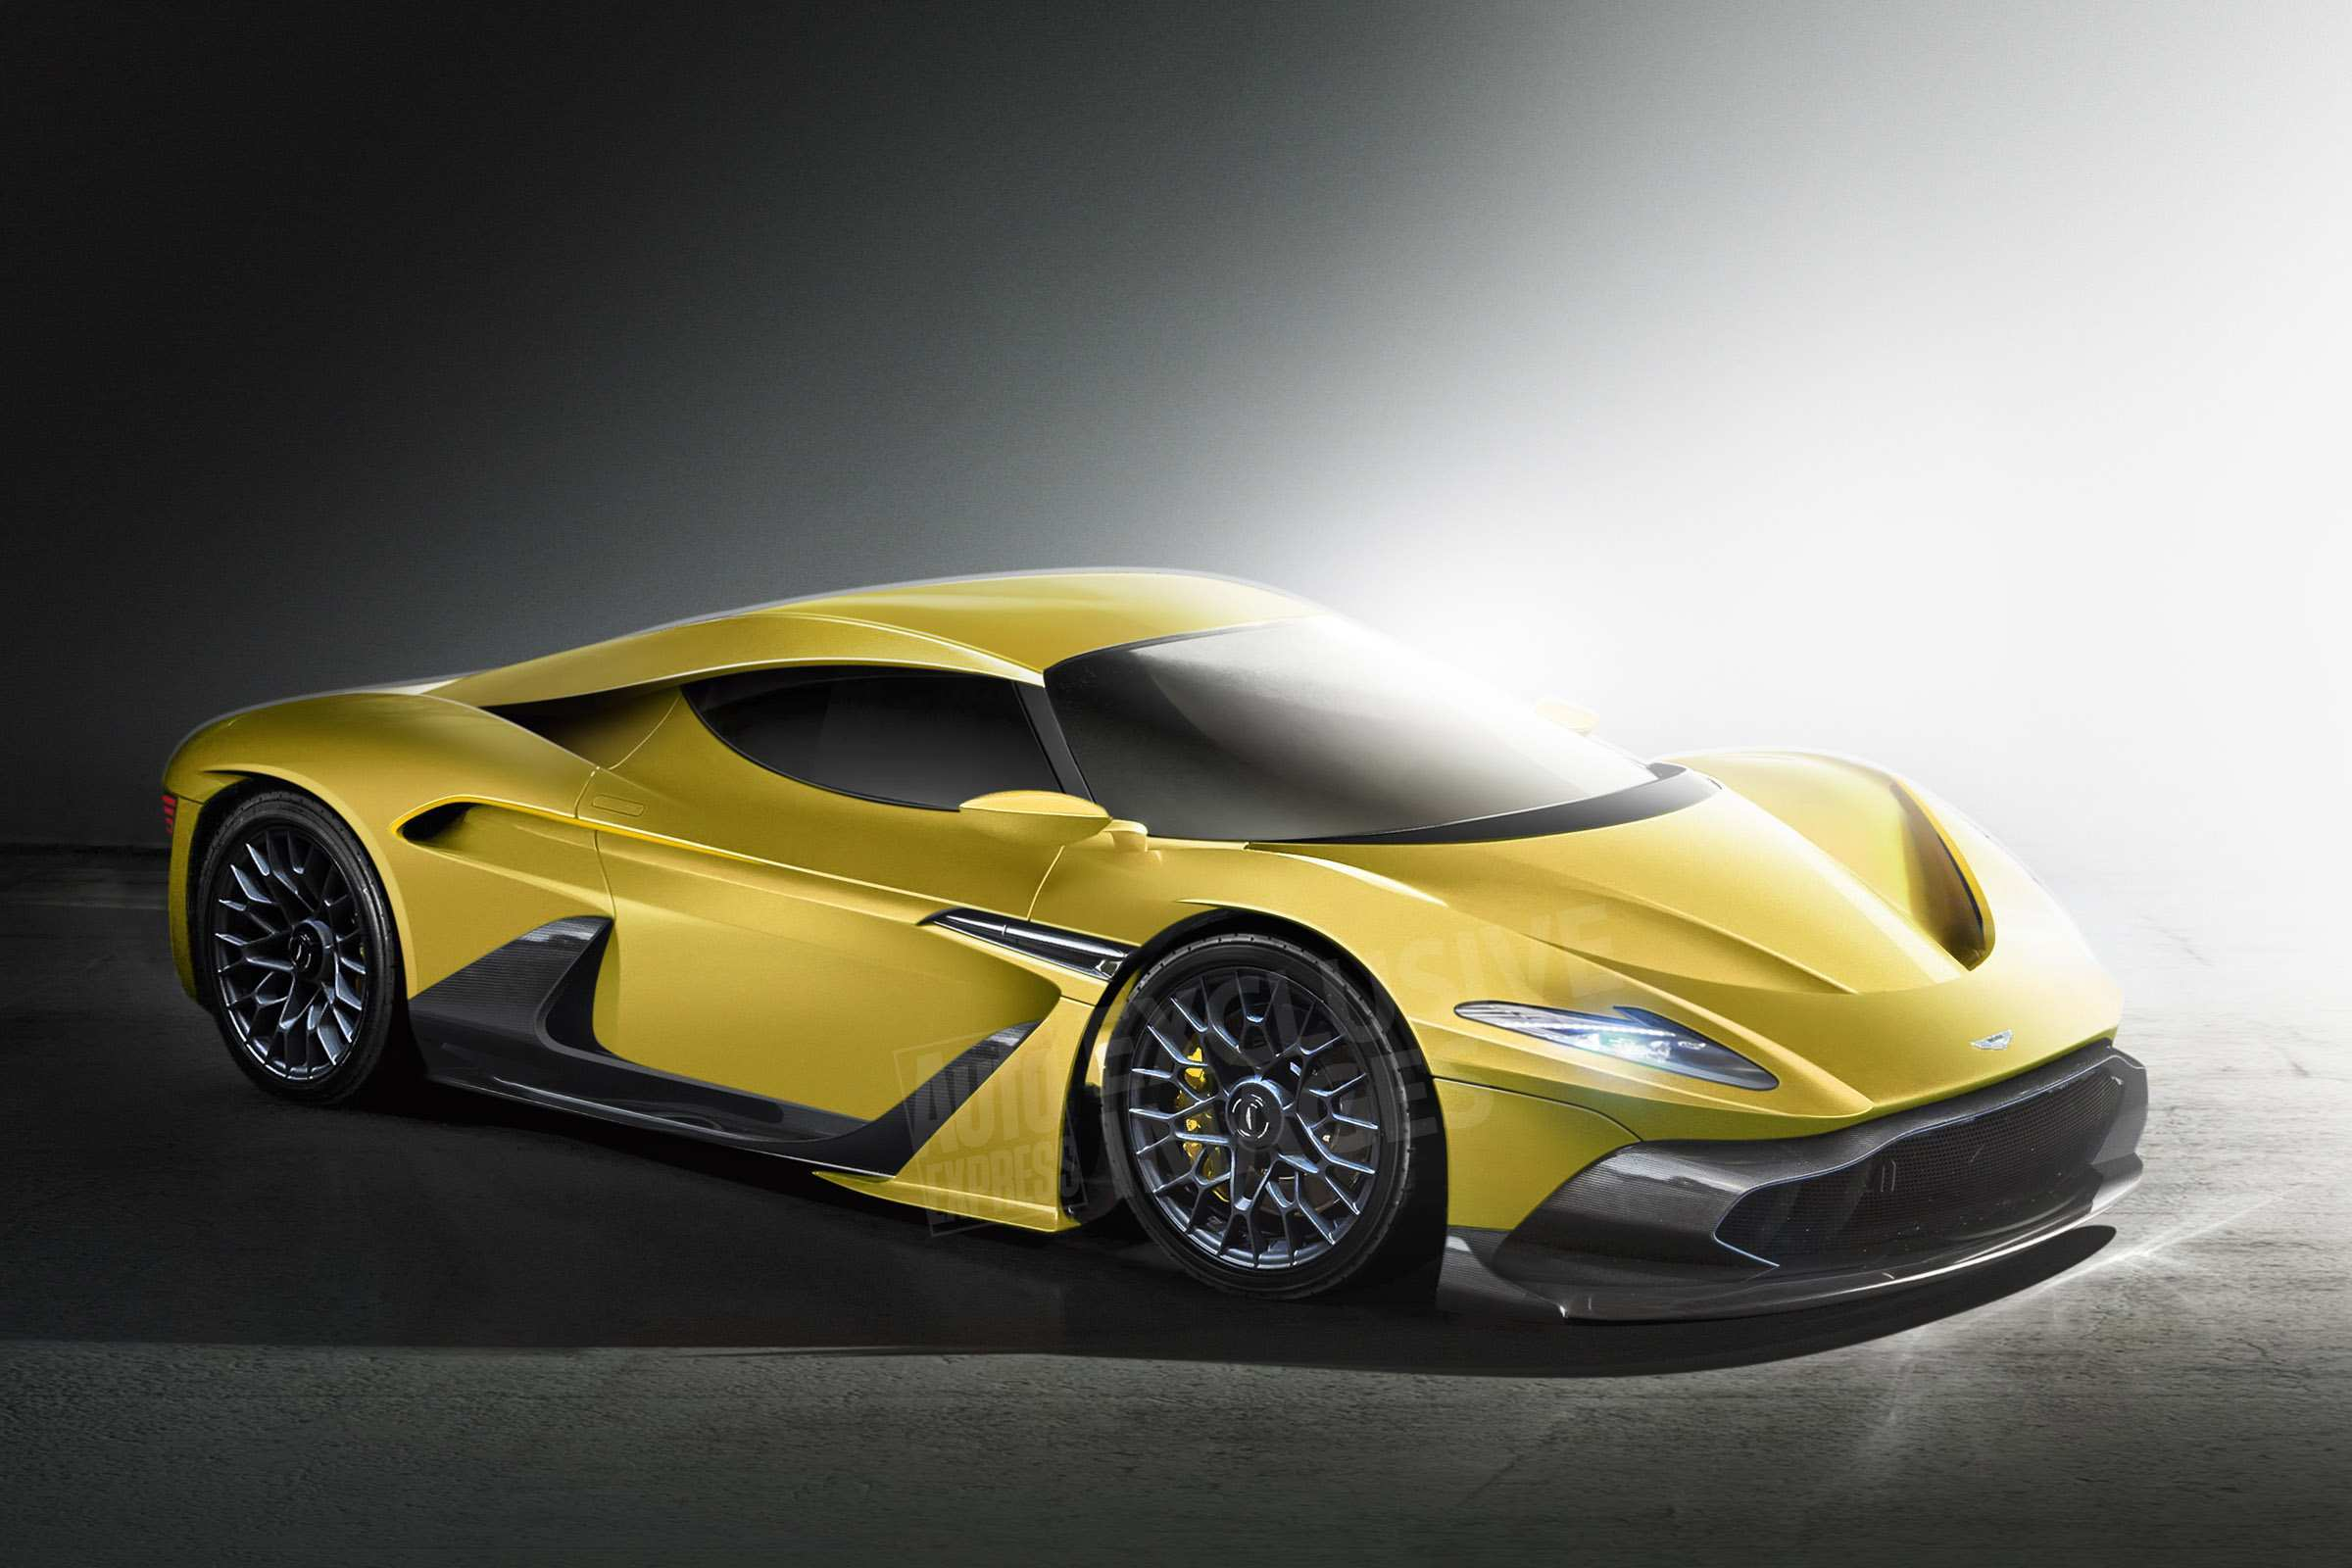 22 Great 2020 Ferrari Models Images with 2020 Ferrari Models